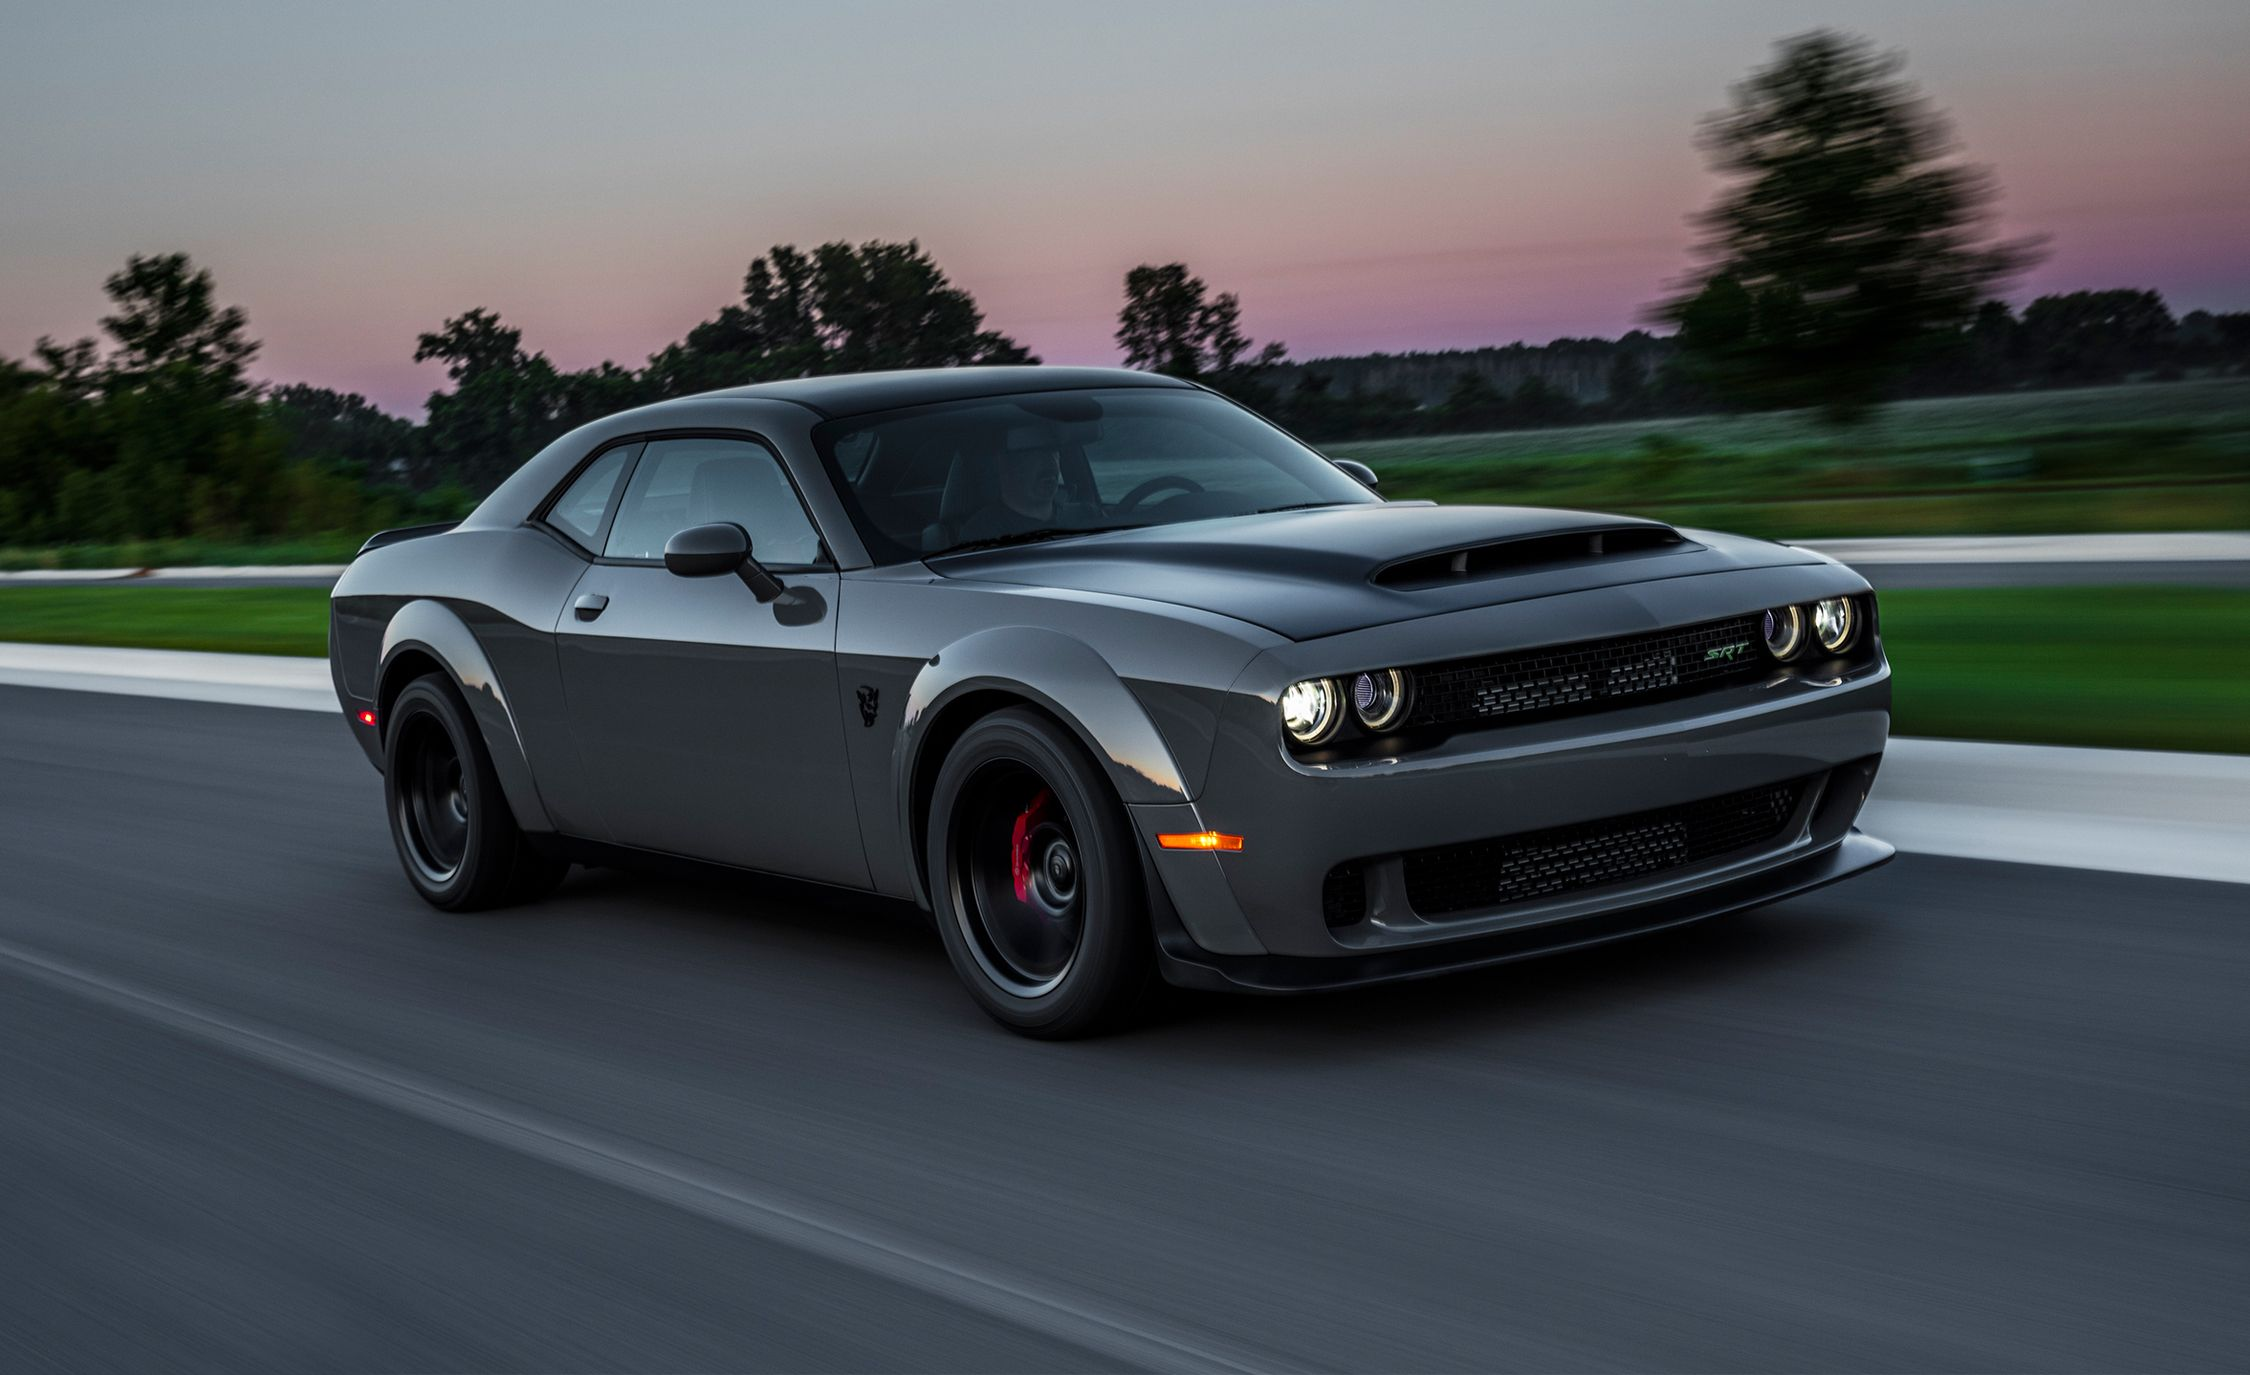 Dodge Challenger SRT Demon Reviews | Dodge Challenger SRT Demon Price, Photos, and Specs | Car ...